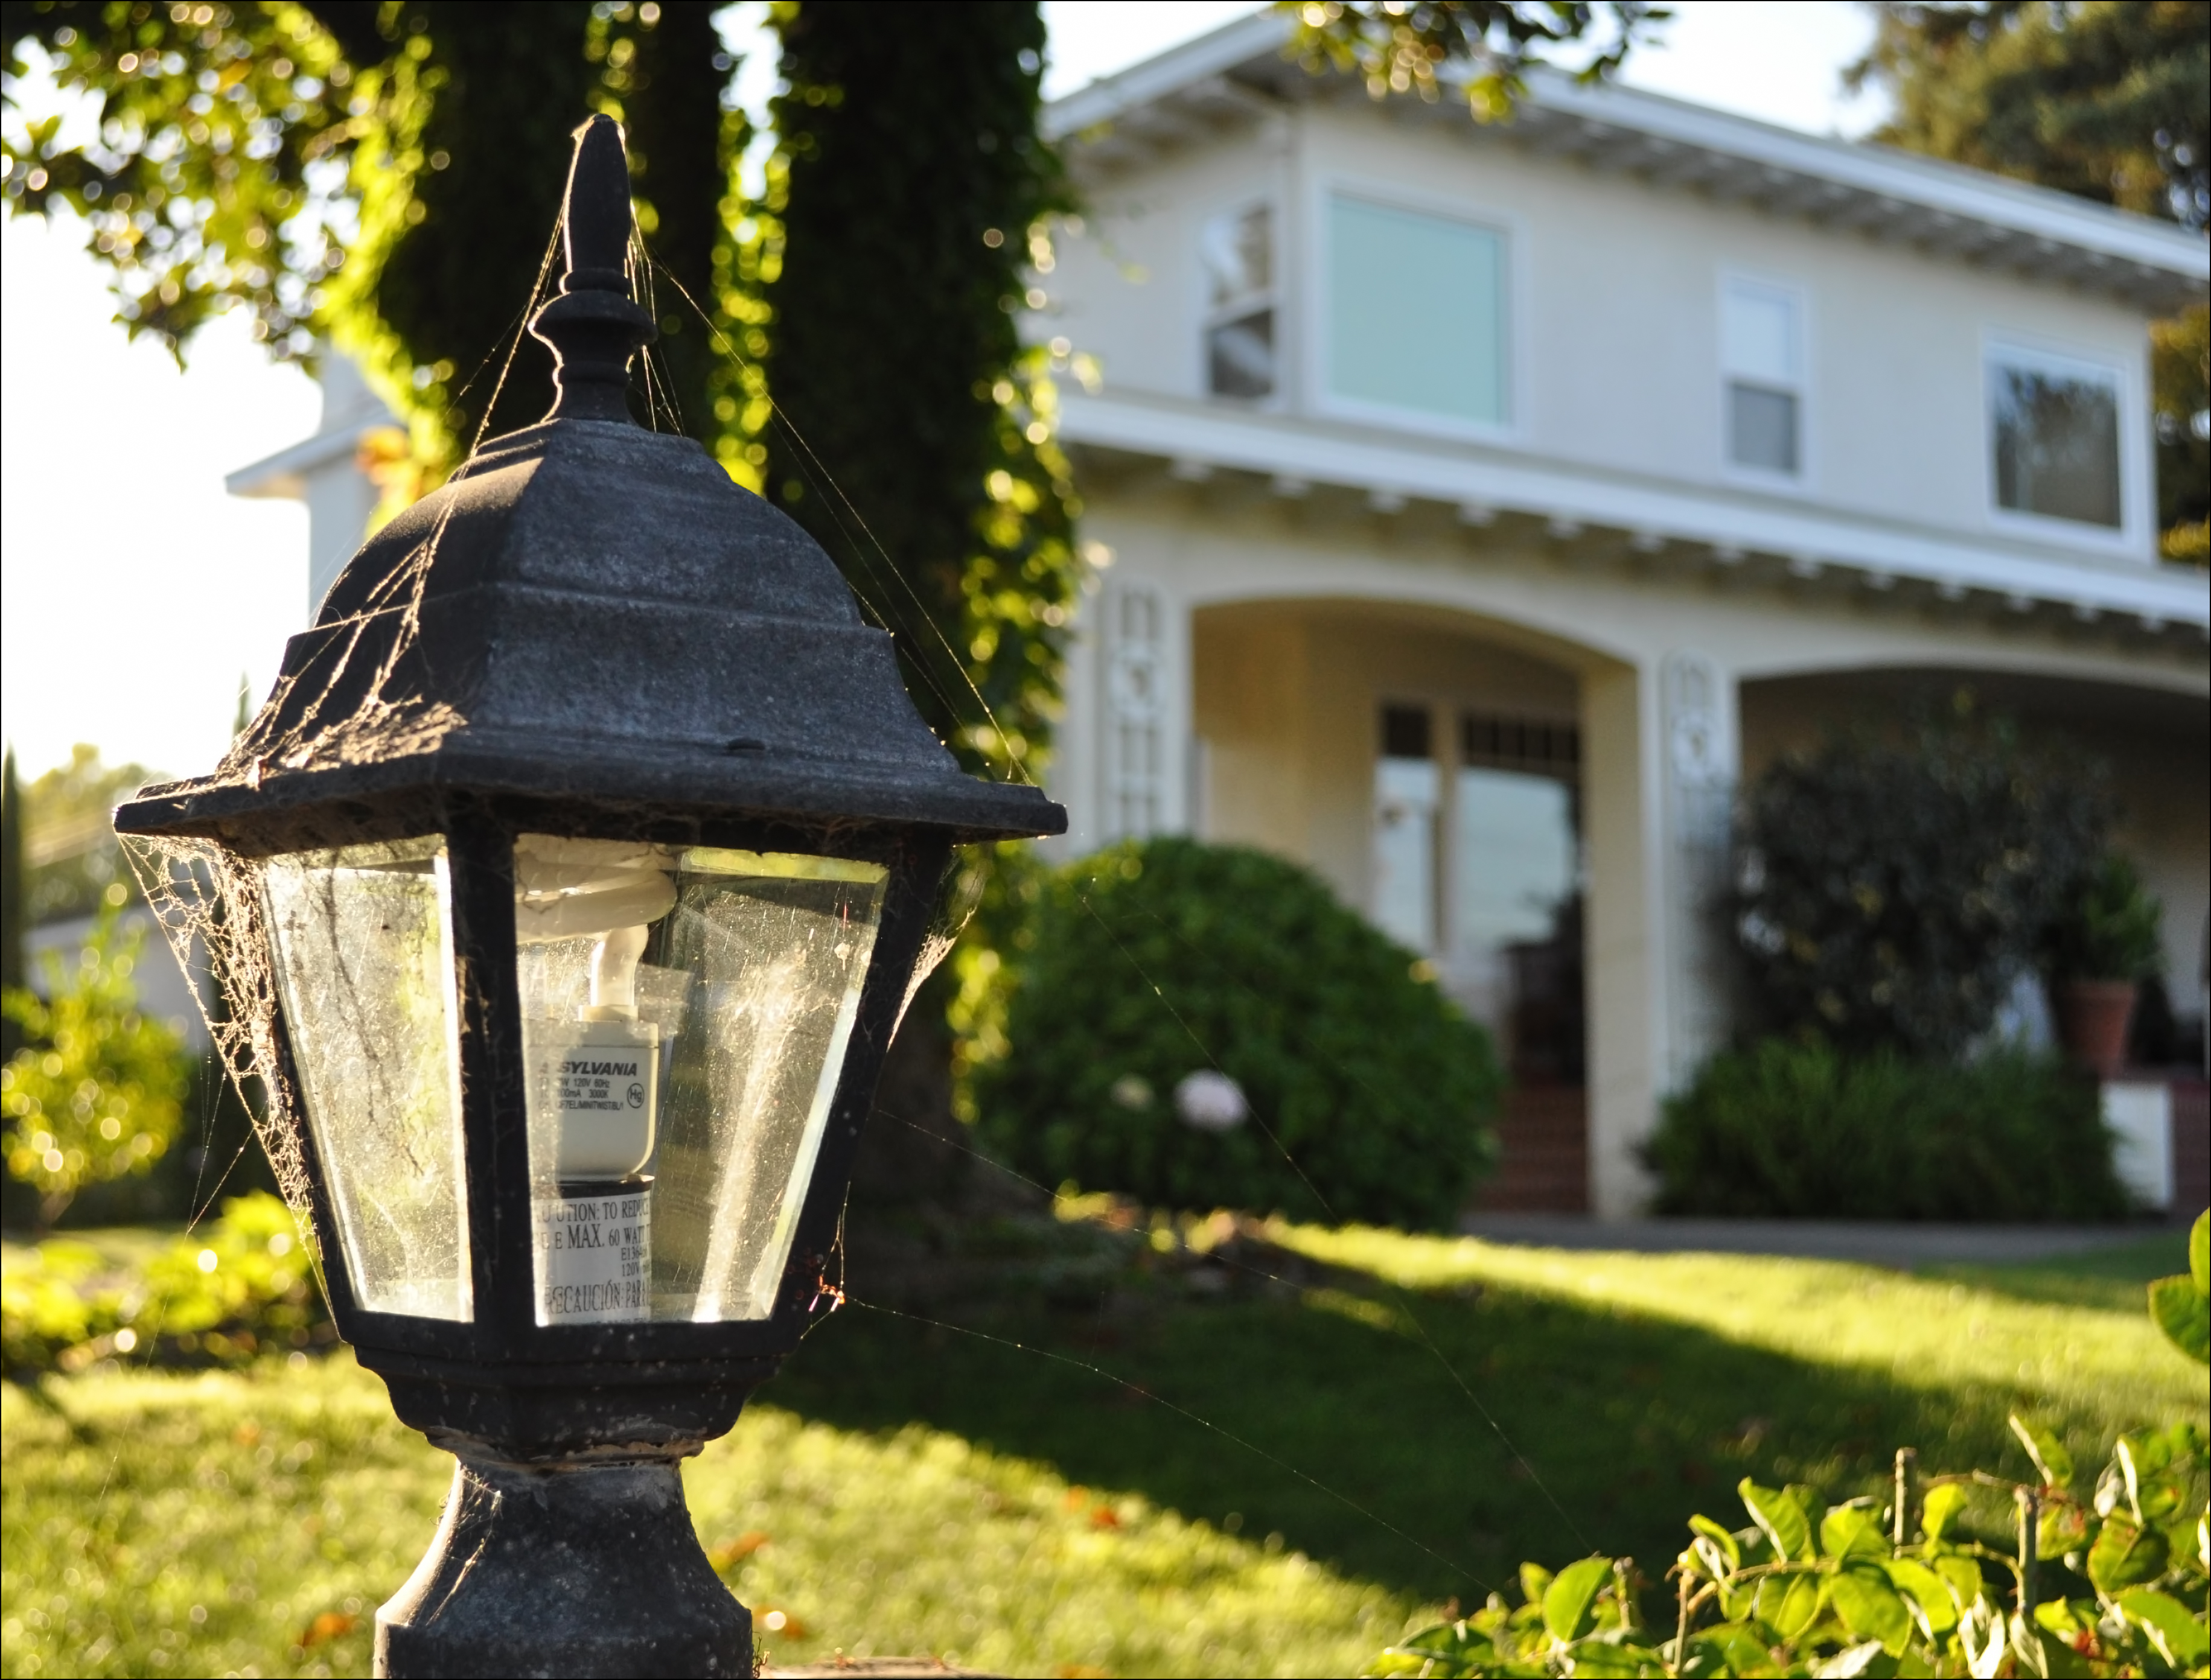 Street Light, Architecture, Building, Construction, House, HQ Photo